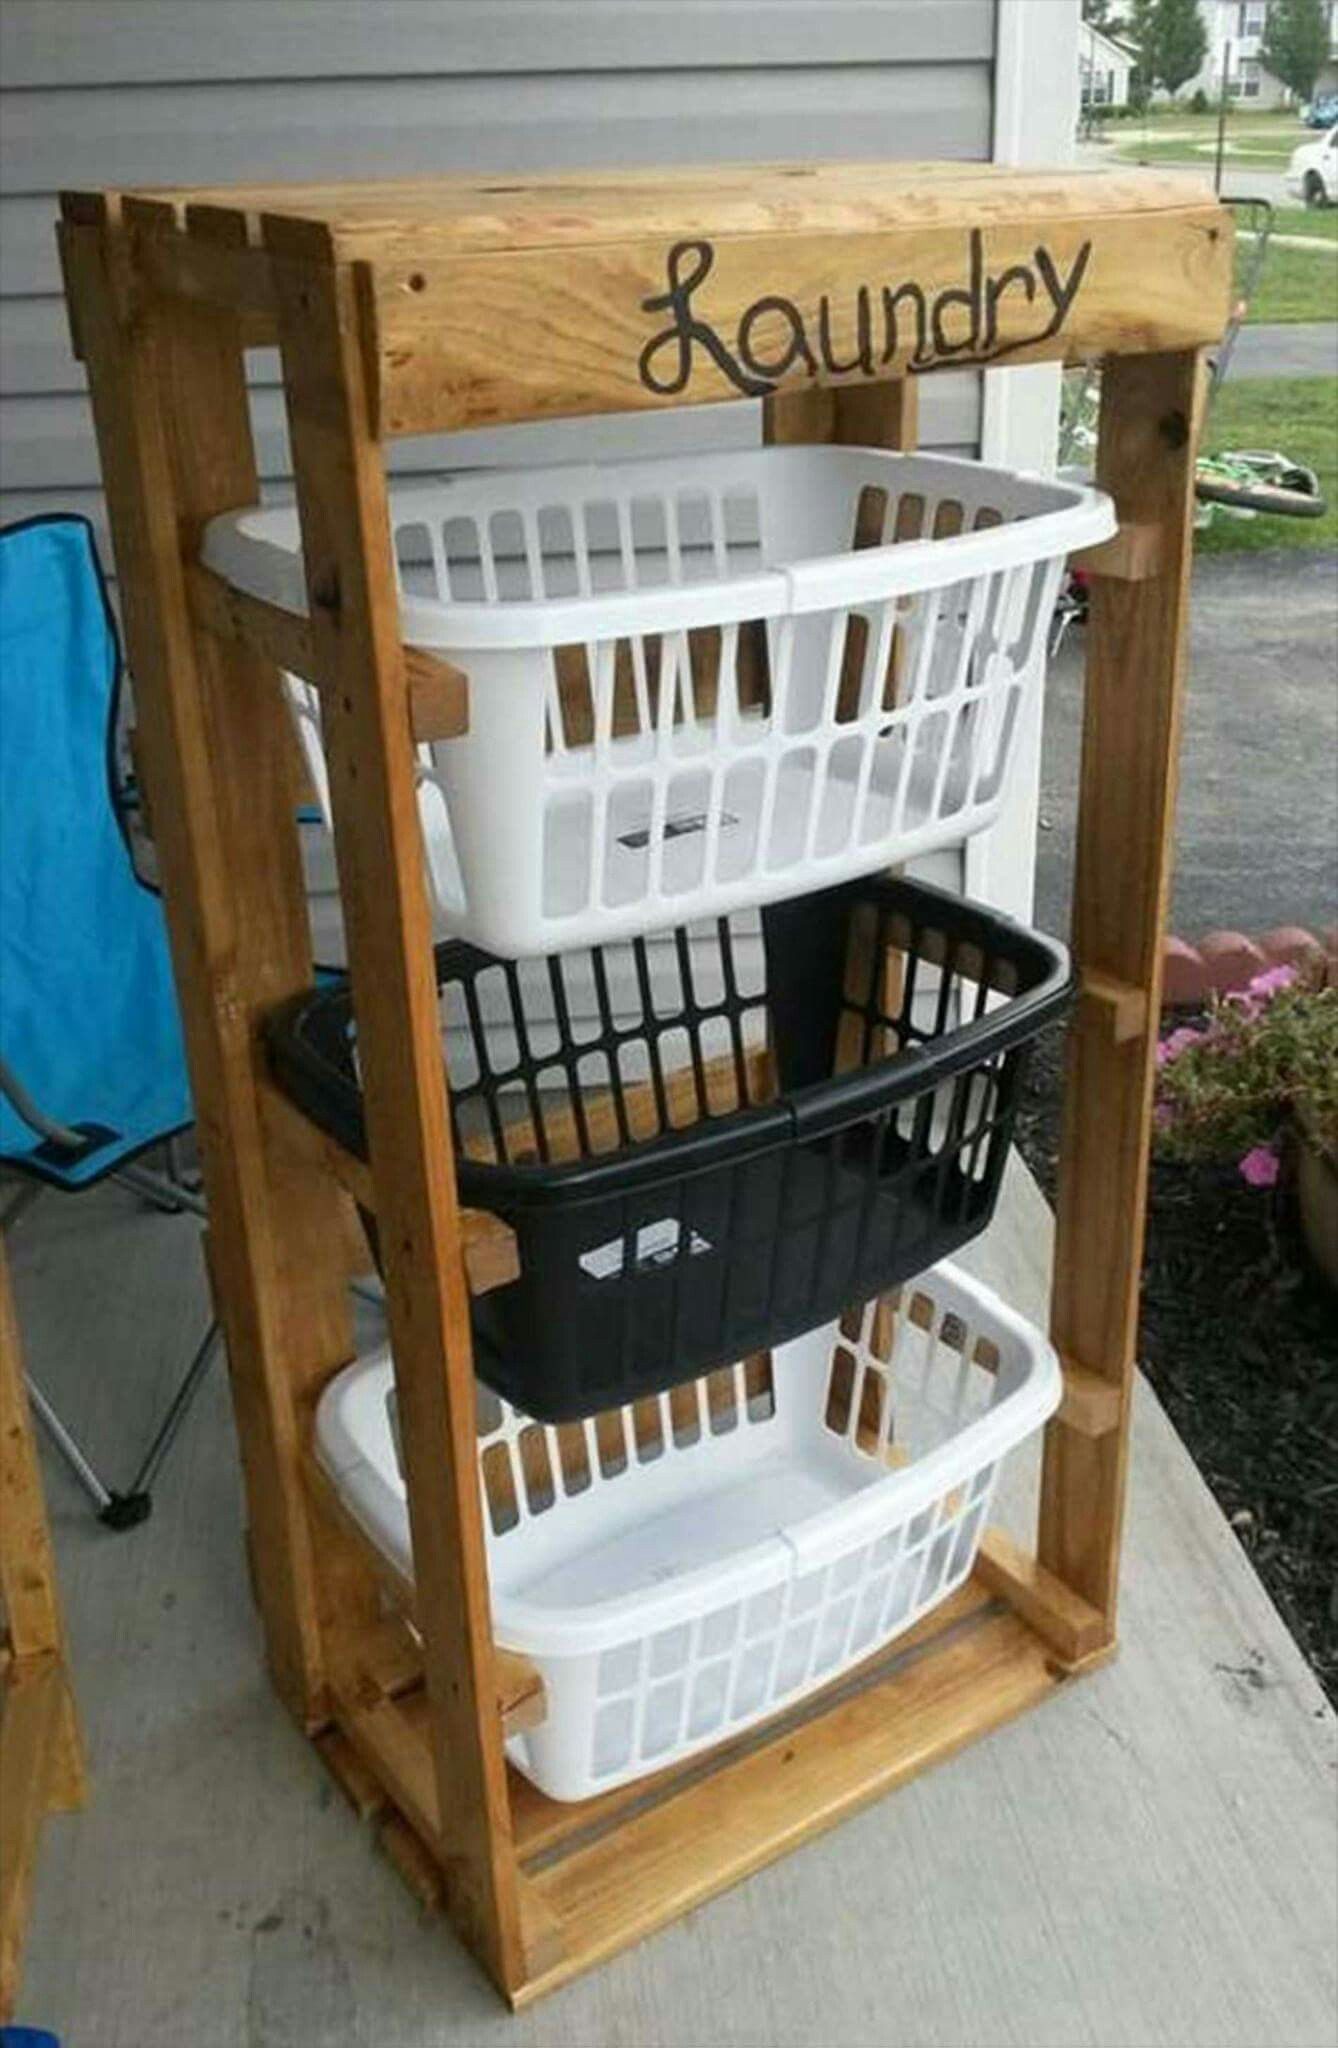 Laundry Center Made From Pallets Diy Home Decor Pinterest  # Muebles Faciles De Hacer En Madera